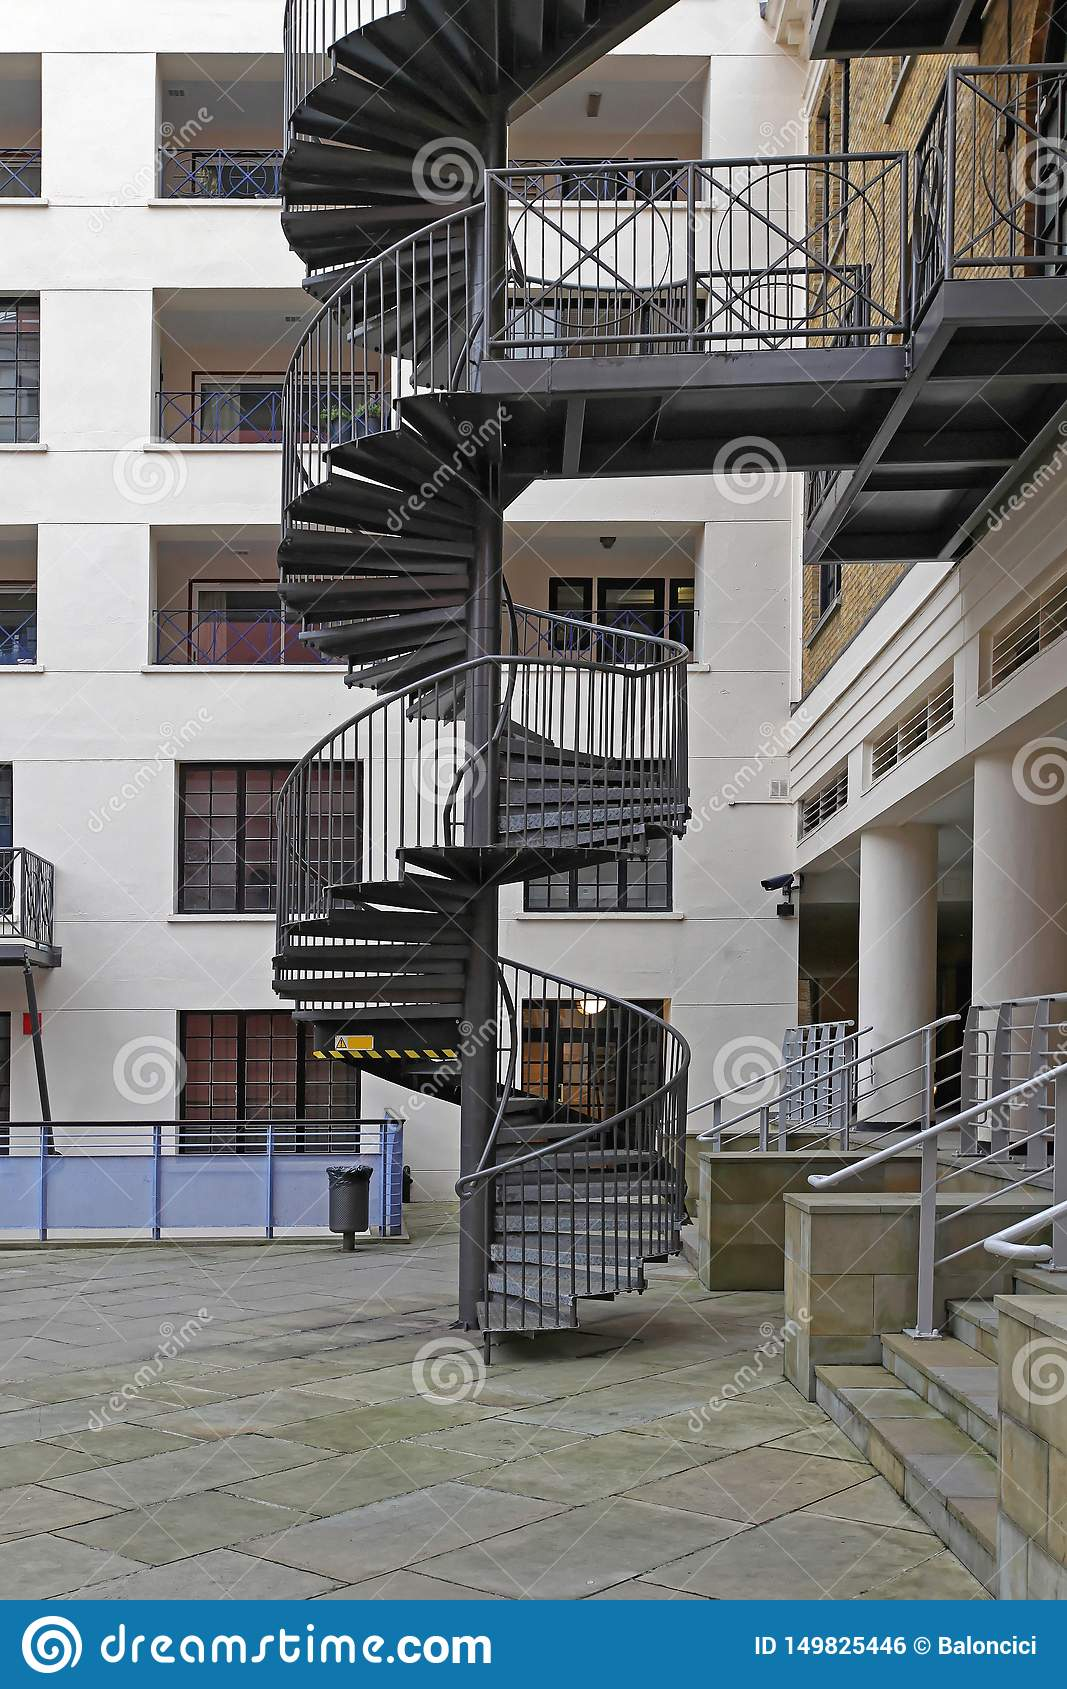 Picture of: Spiral Staircase Stock Photo Image Of Steps Emergency 149825446